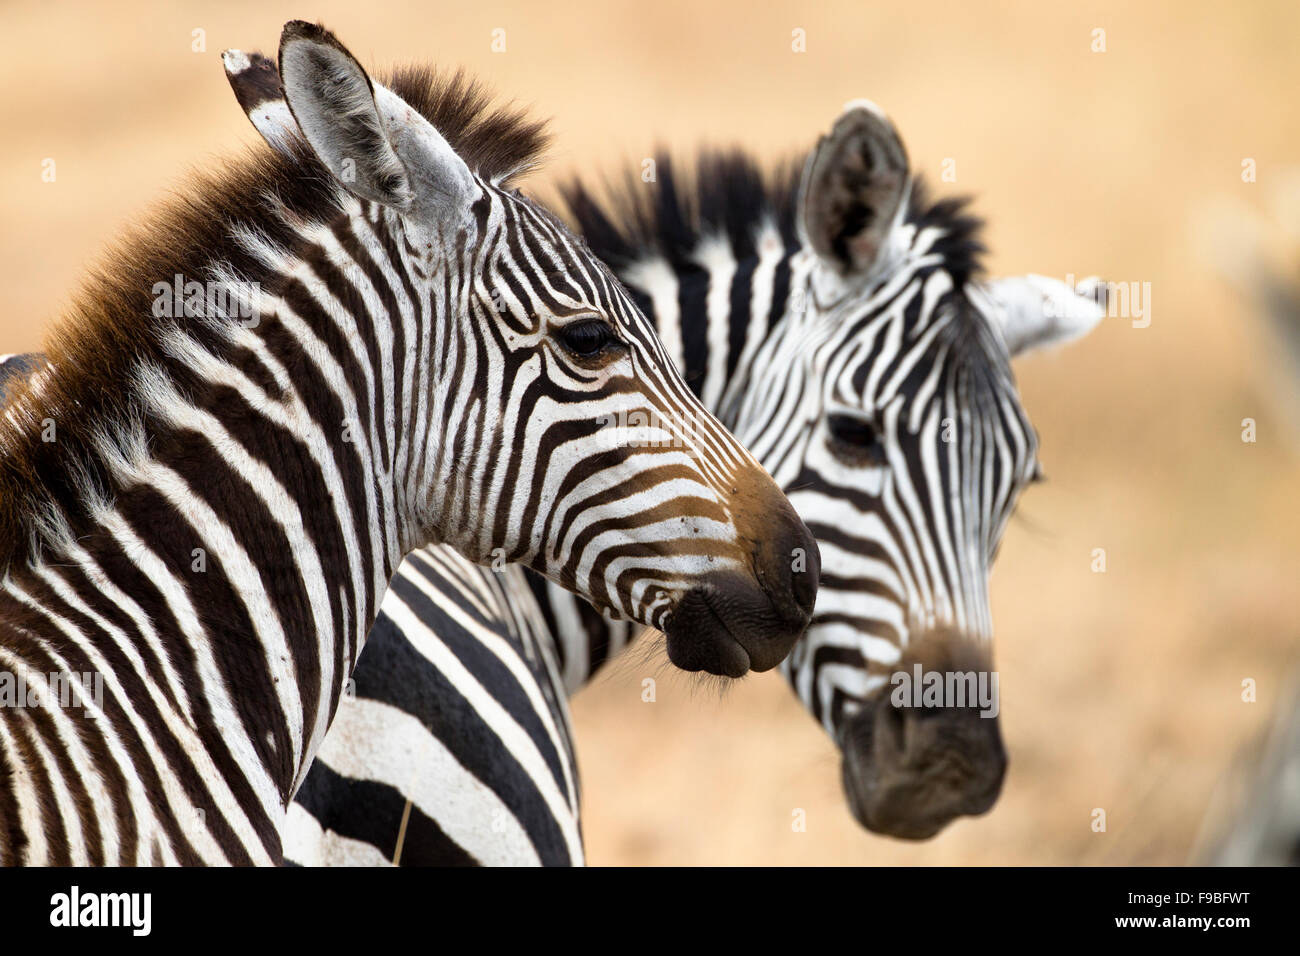 Two young Zebra at play. - Stock Image